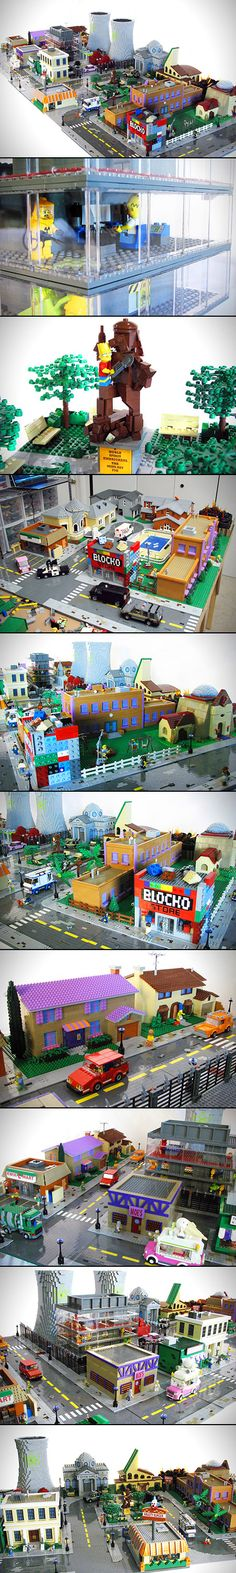 Talk with Matt De Lanoy, because he's achieved it, thanks to this massive and amazing LEGO version of the town of Springfield. If it's a staple location on the show, it's here, including the Simpson and Flanders houses, Moe's Tavern, Krusty Burger, the Kwik-E-Mart, the nuclear power plant, The Android's Dungeon, the Stonecutter's Club and more.